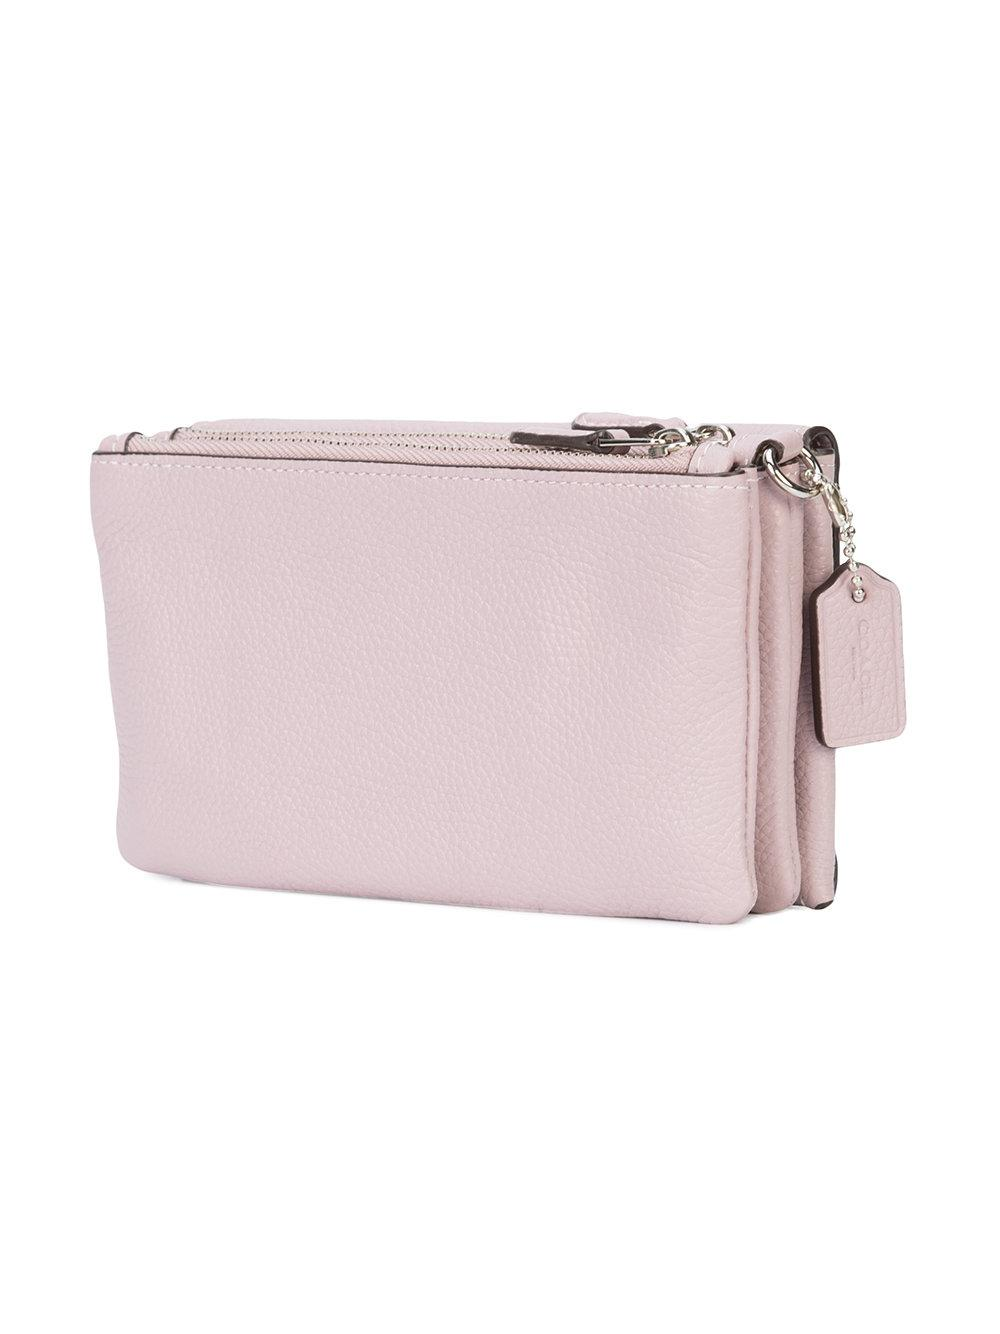 9edfe1058c Lyst - COACH Triple Small Wallet in Pink